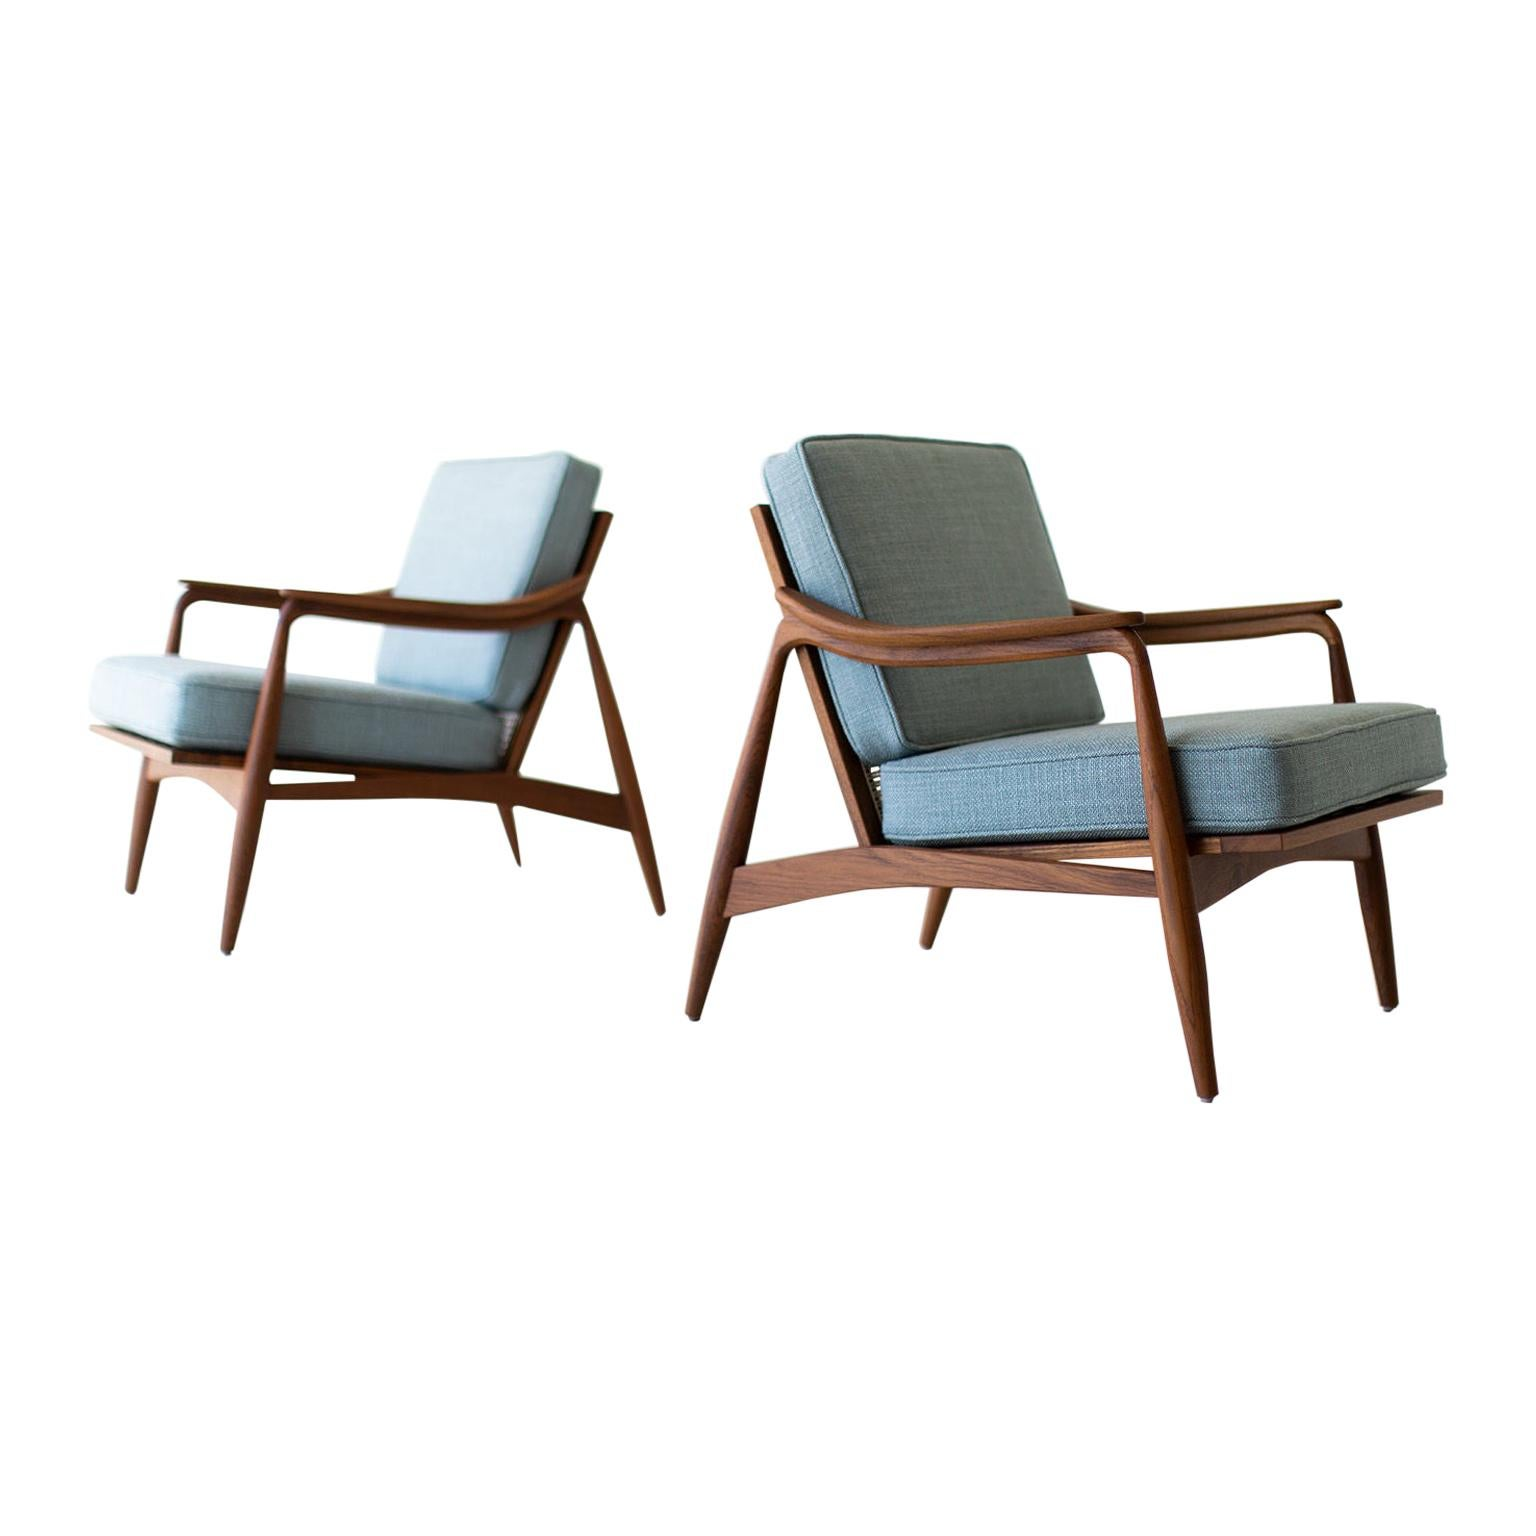 Lawrence Peabody Cane Back Teak Lounge Chairs for Craft Associates Furniture